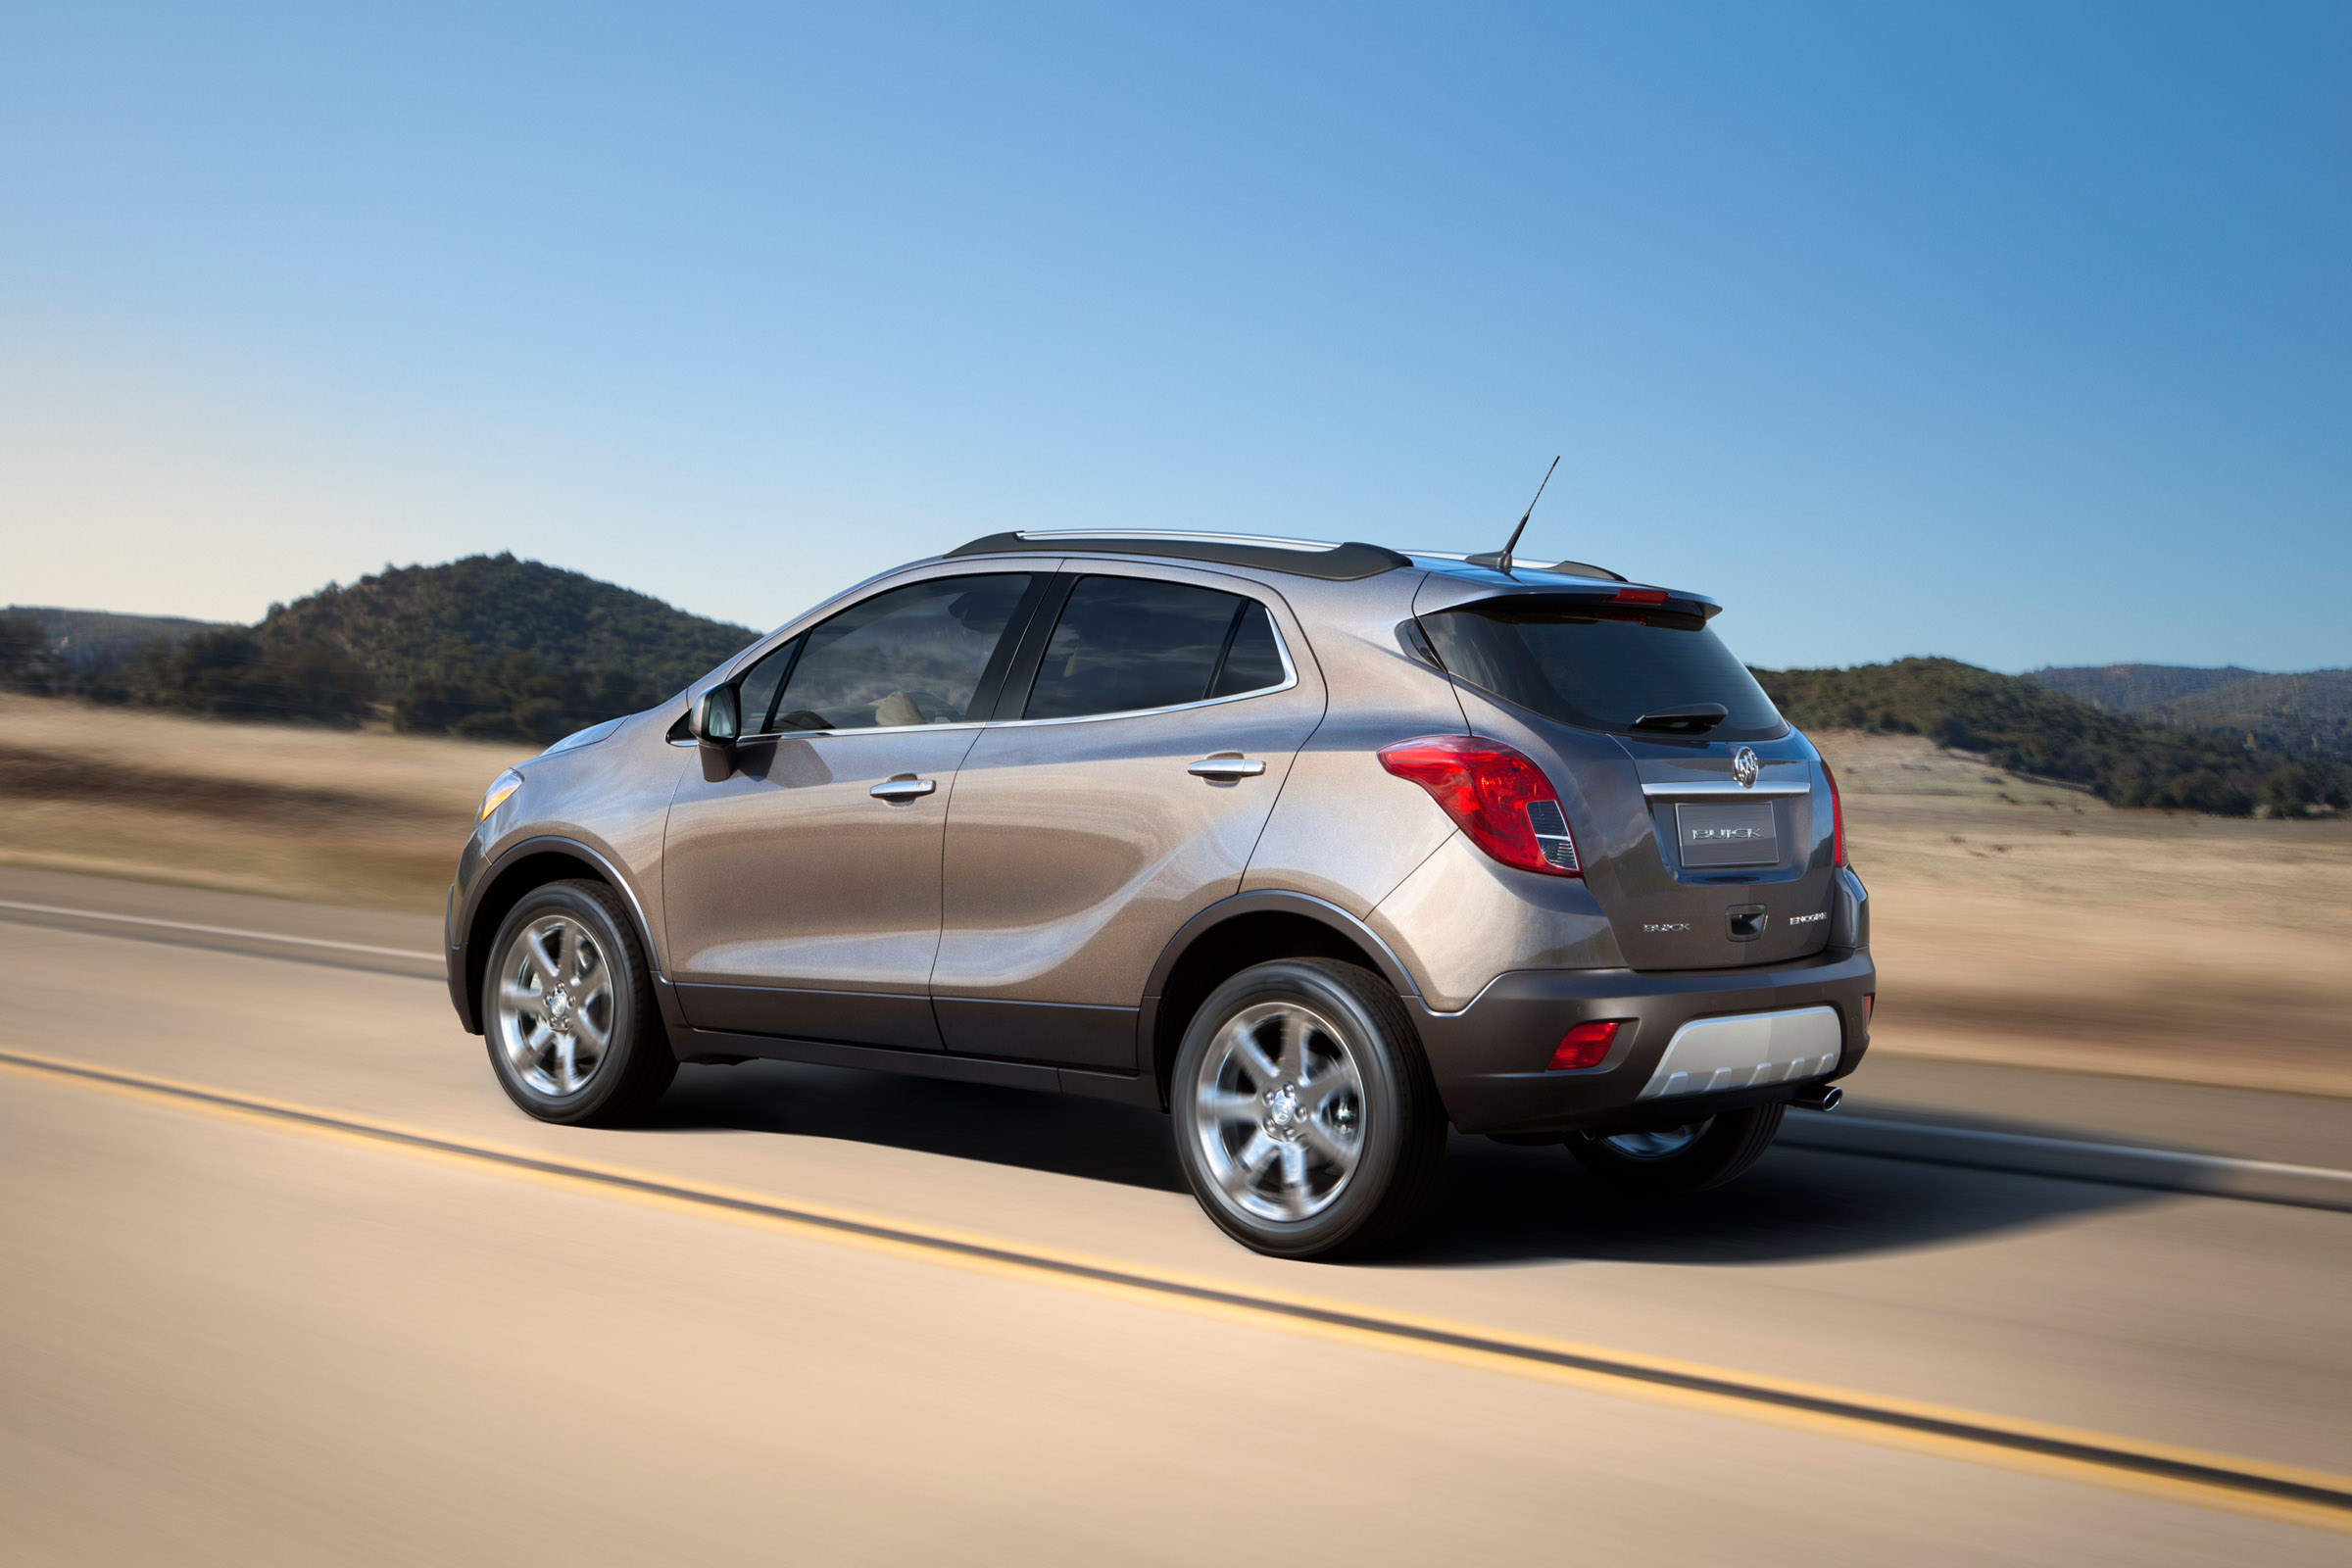 suvs of mov showing compact image buick small key luxury features price elevated form the model suv details encore